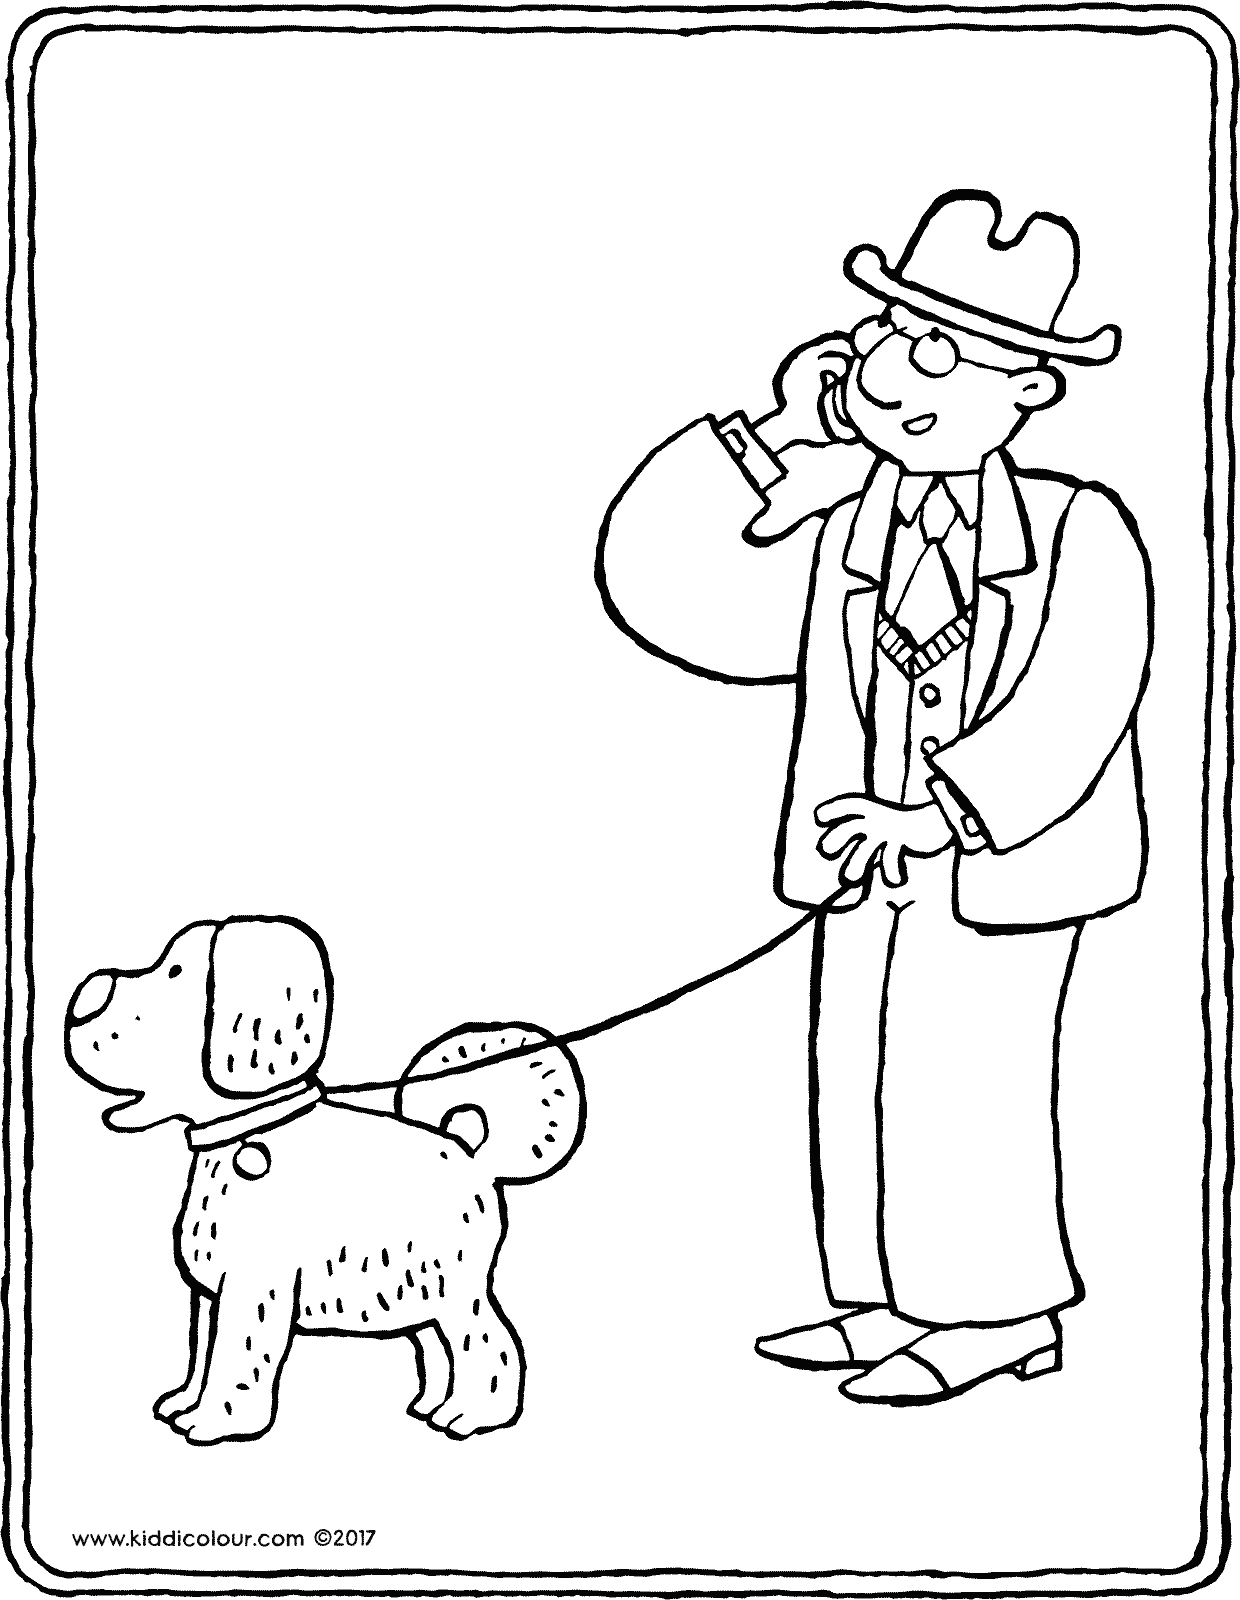 dog on a lead colouring page drawing picture 01V